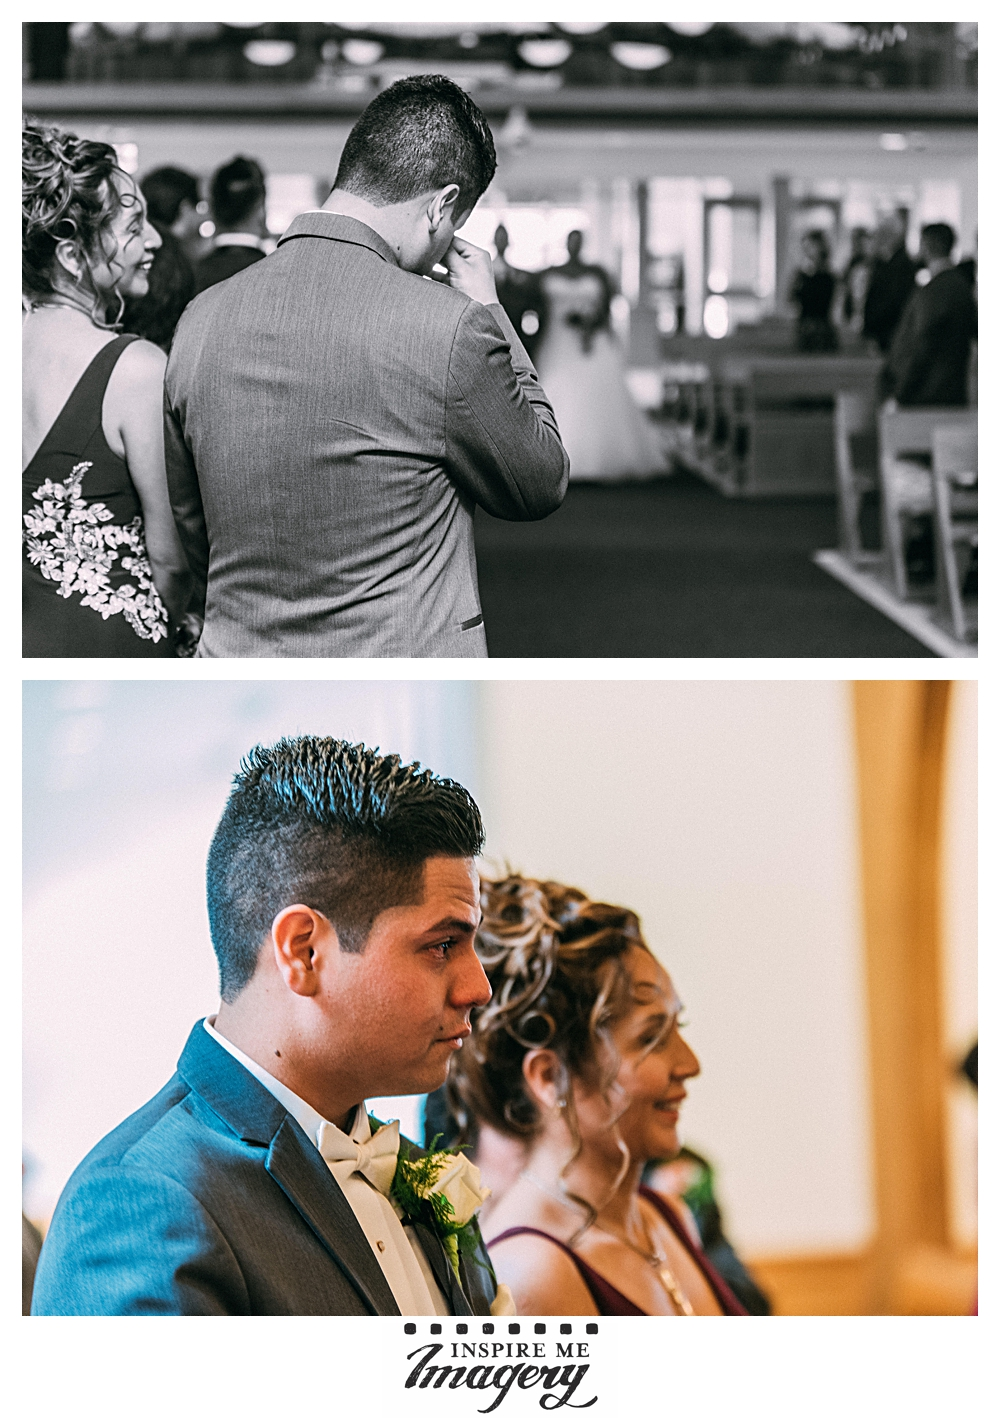 First looks certainly can make the day go more smoothly when it comes to portrait time, but there's something to be said for a groom seeing his bride for the first time as she walks down the aisle toward him.